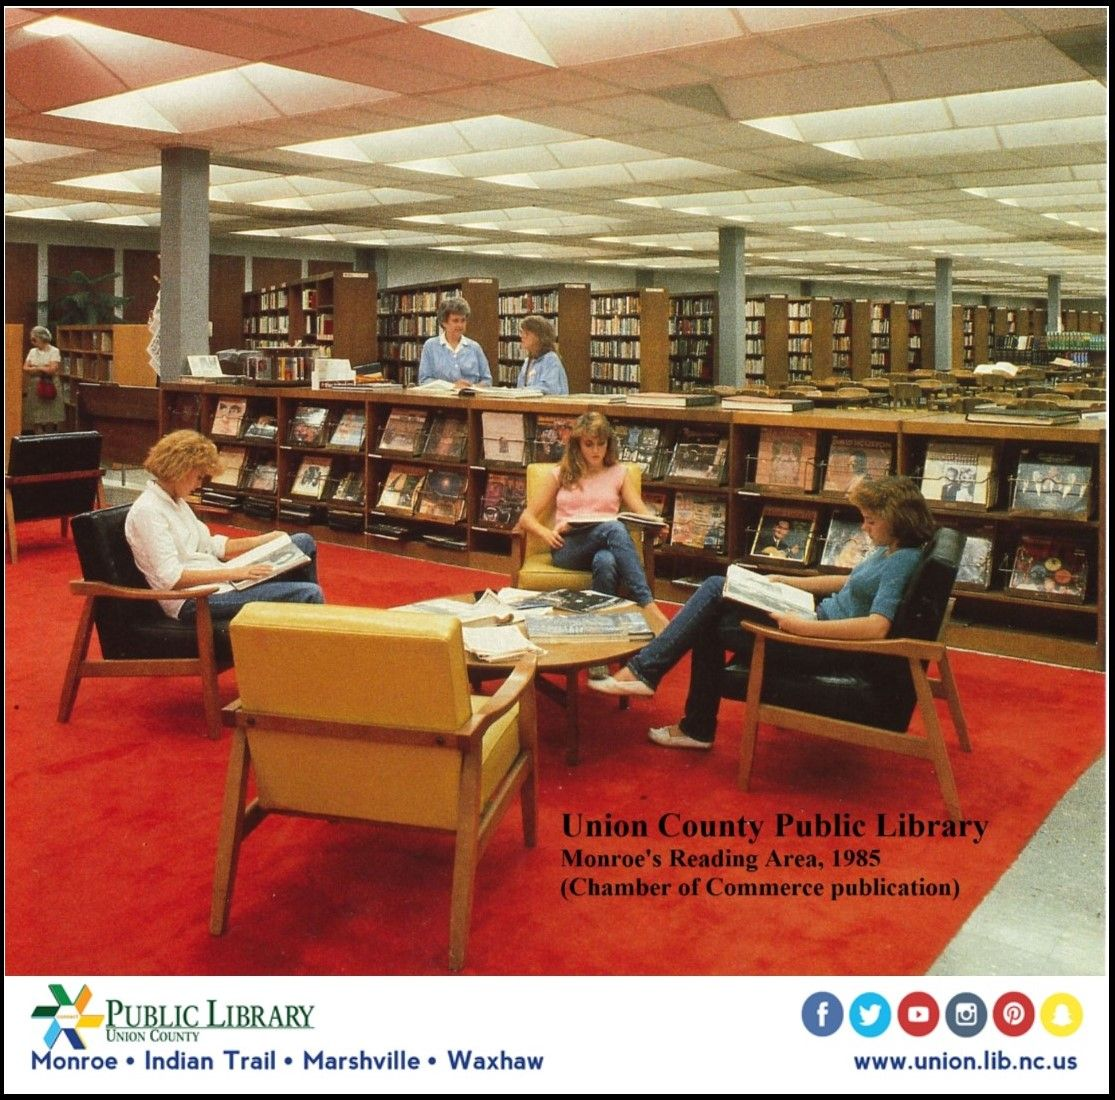 Tbt Our Reading Area Had A Large Chinese Red Rug This Was Gone By 2003 When The Union County Public Library Under Reading Area Union County Public Library